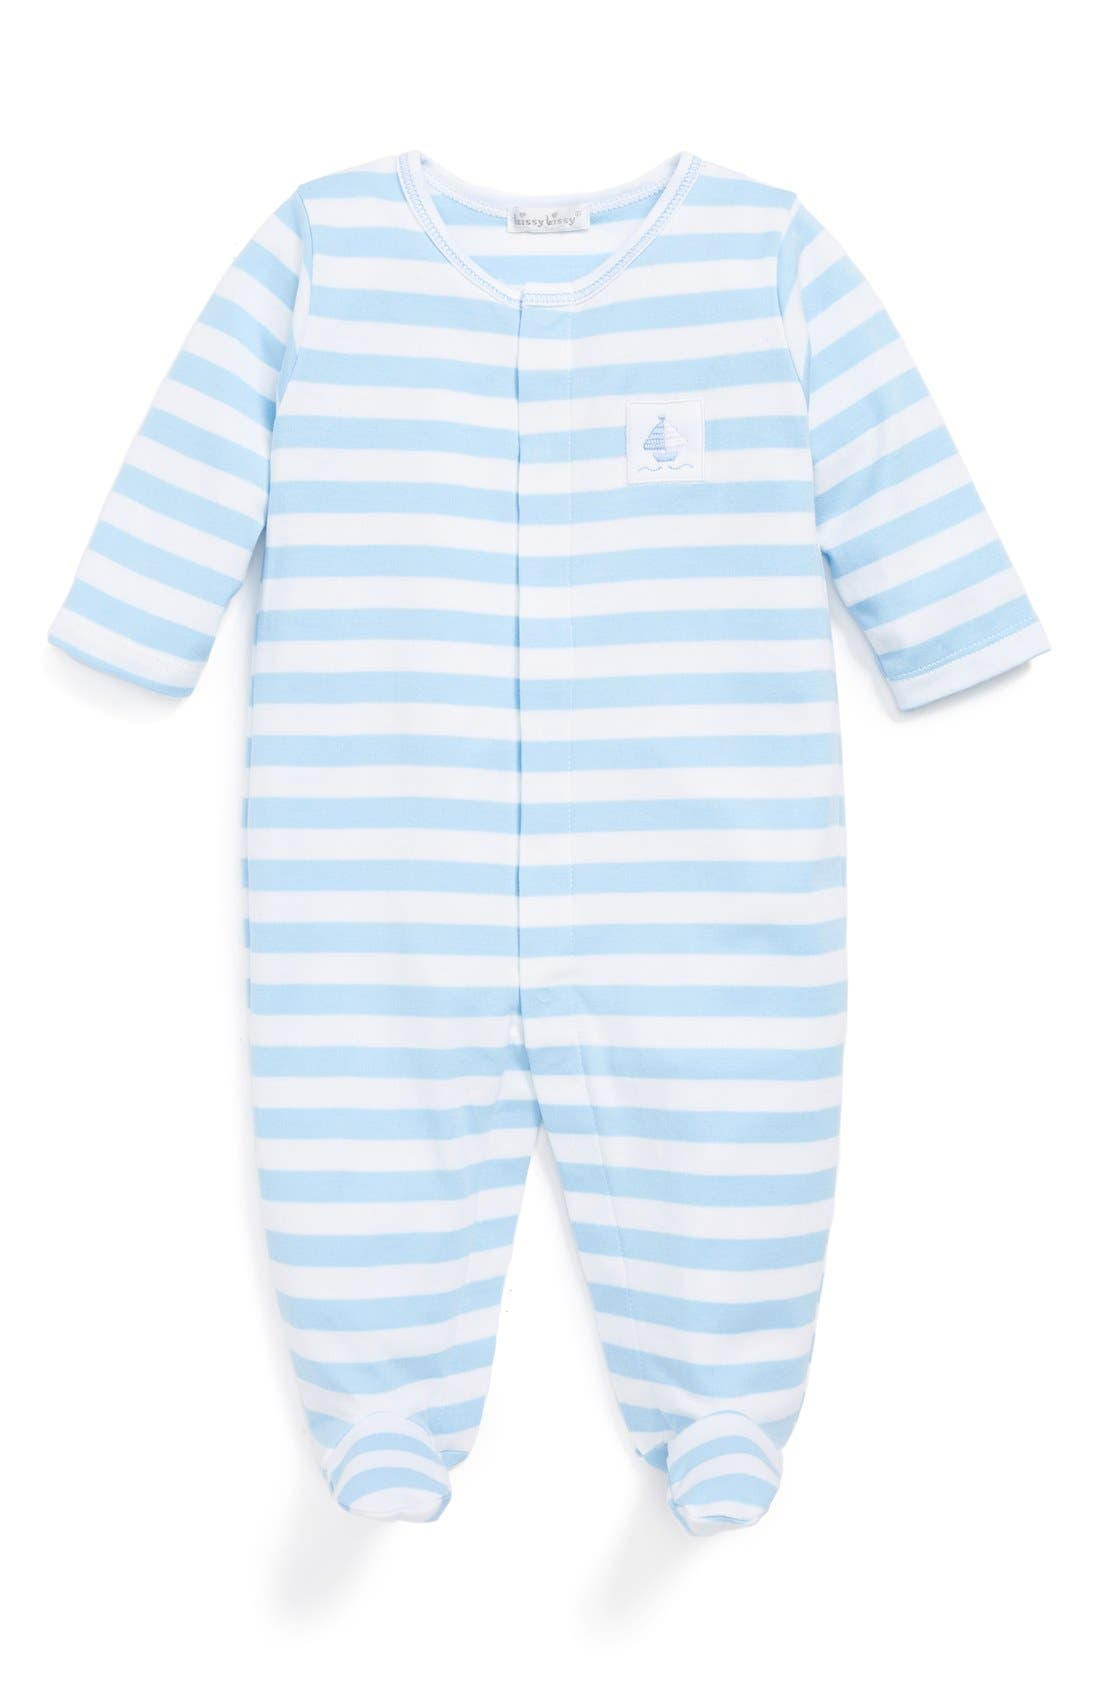 Main Image - Kissy Kissy 'Mainsail' Pima Cotton One-Piece (Baby Boys)